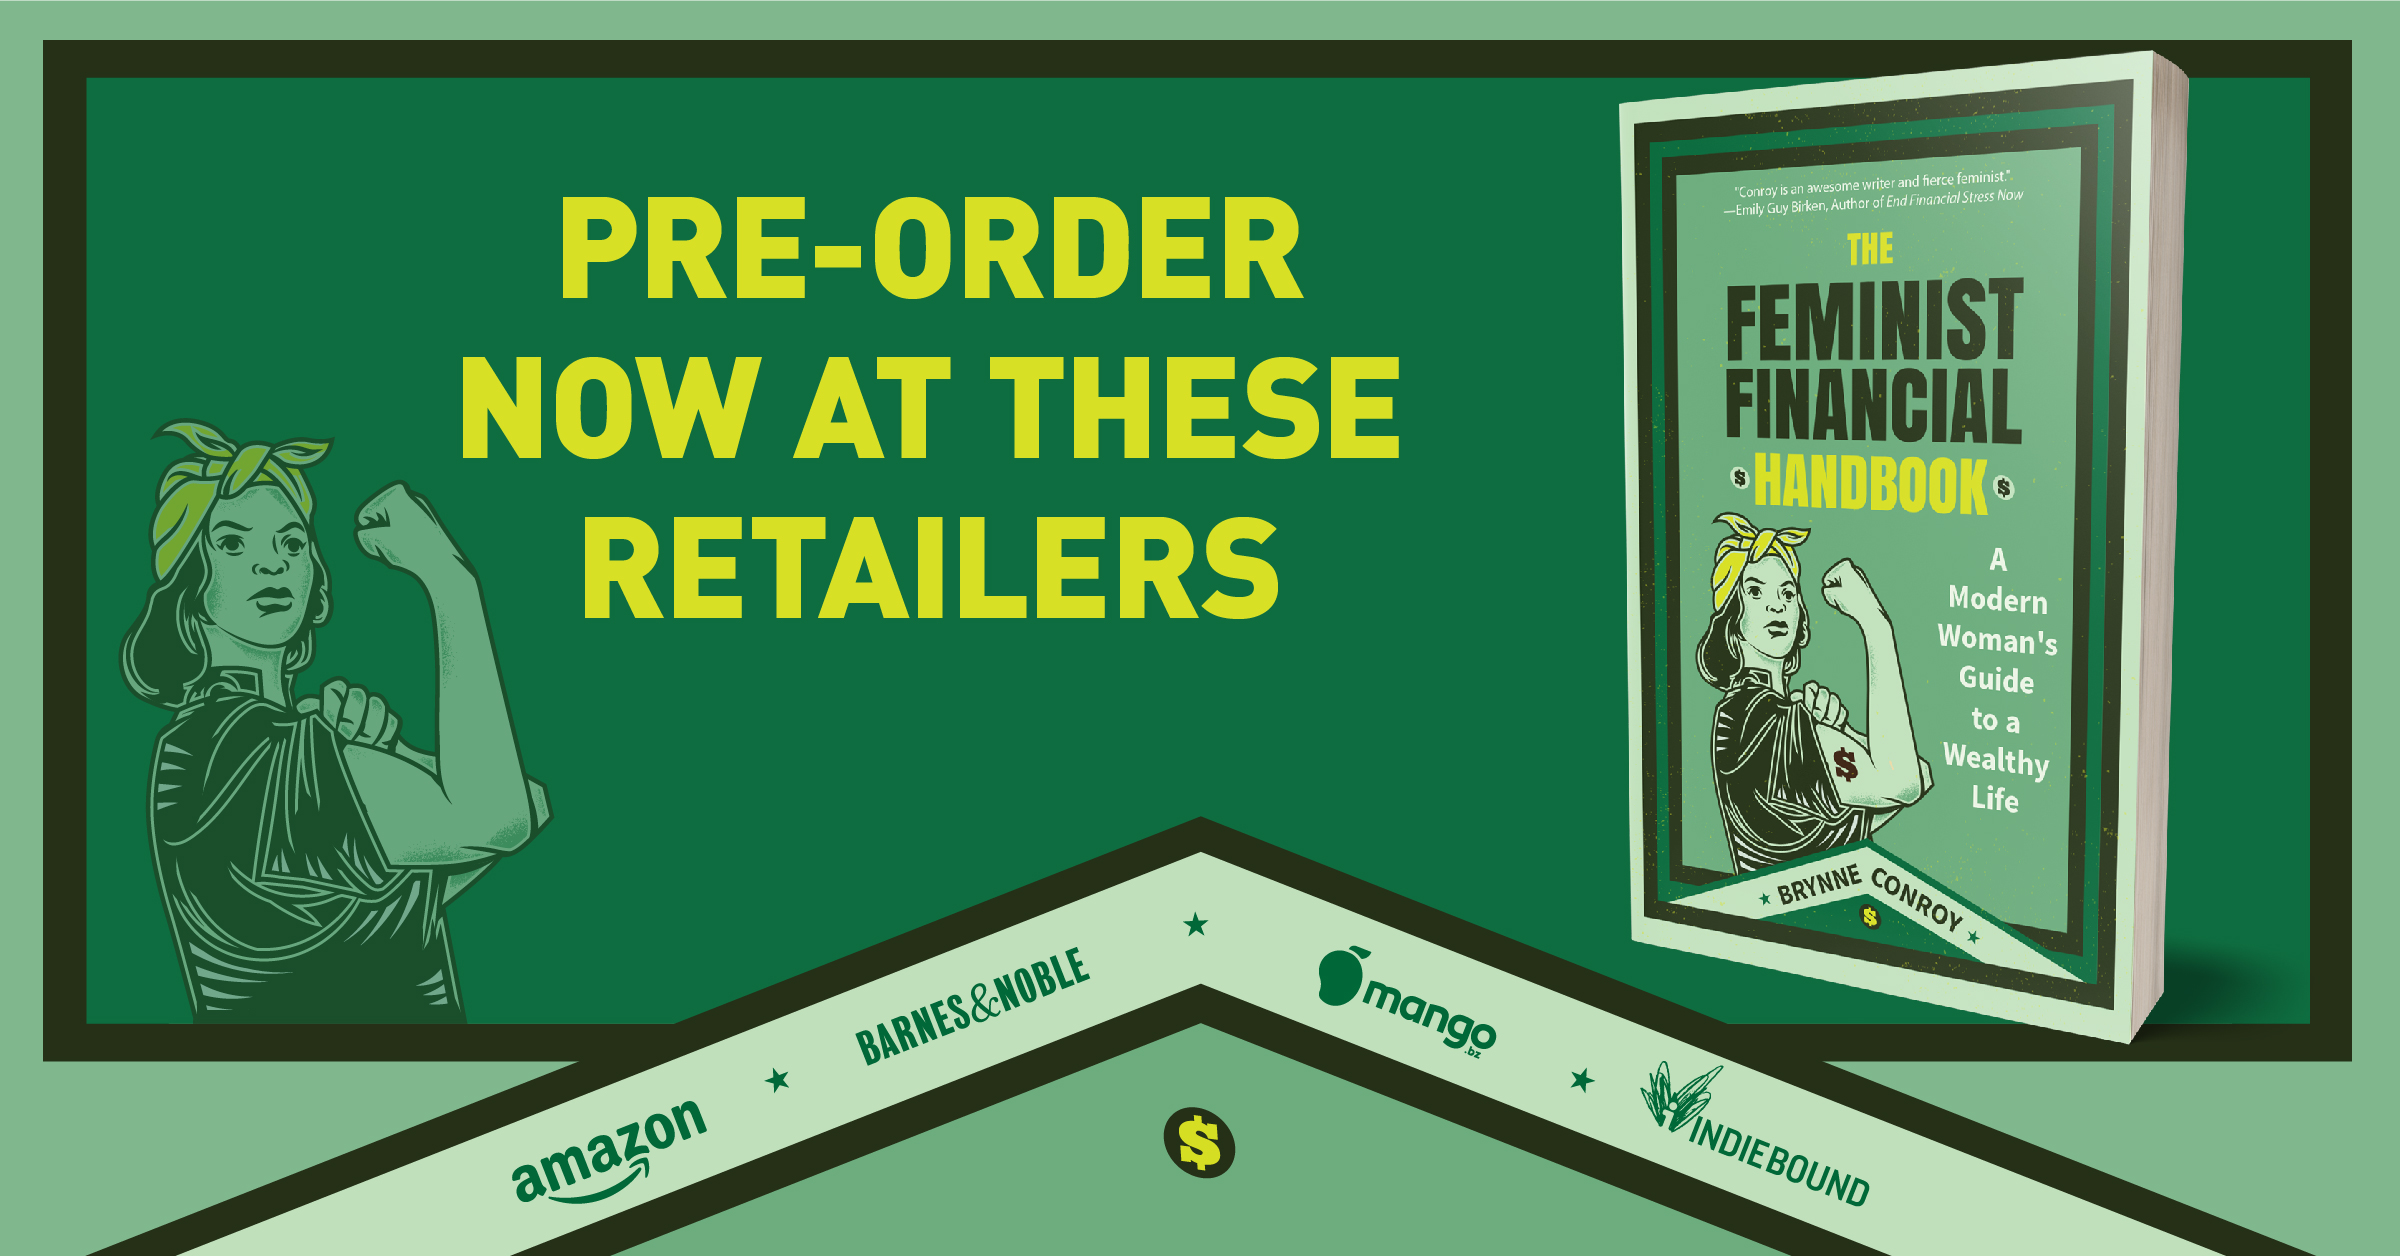 Preorder the feminist financial handbook mango barnes and noble amazon indiepress